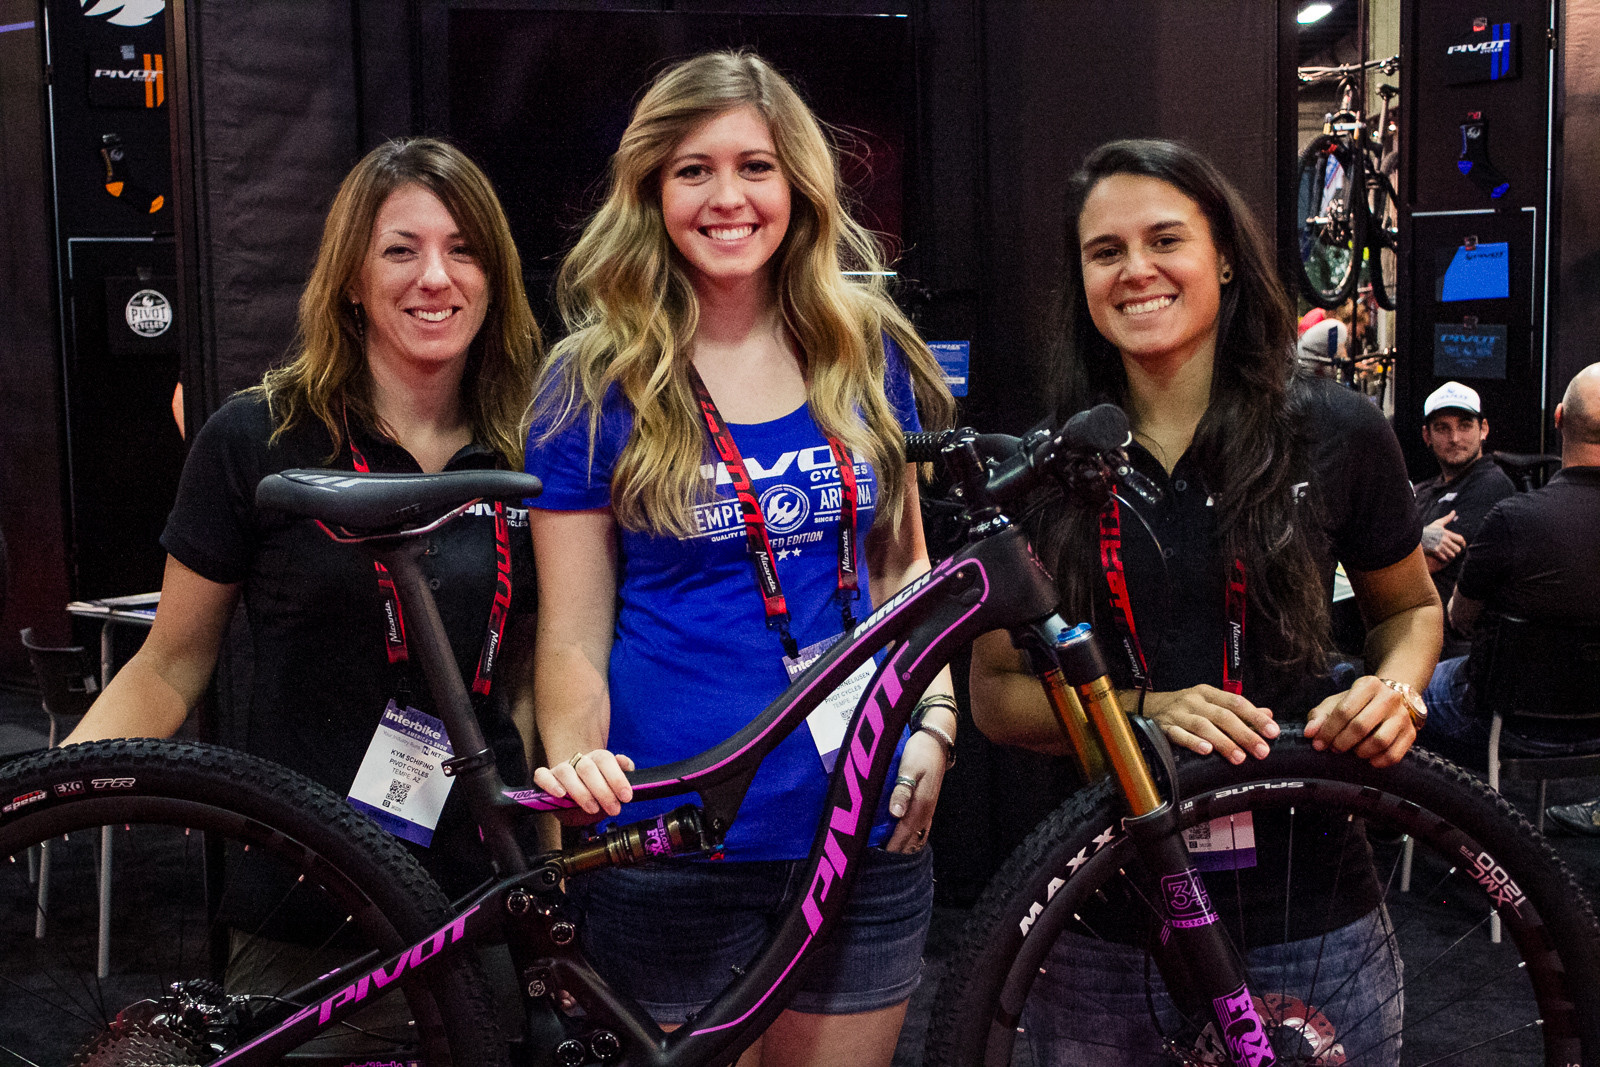 A Good Year for Women - 2016 Women's Bikes and Gear at Interbike - Mountain Biking Pictures - Vital MTB